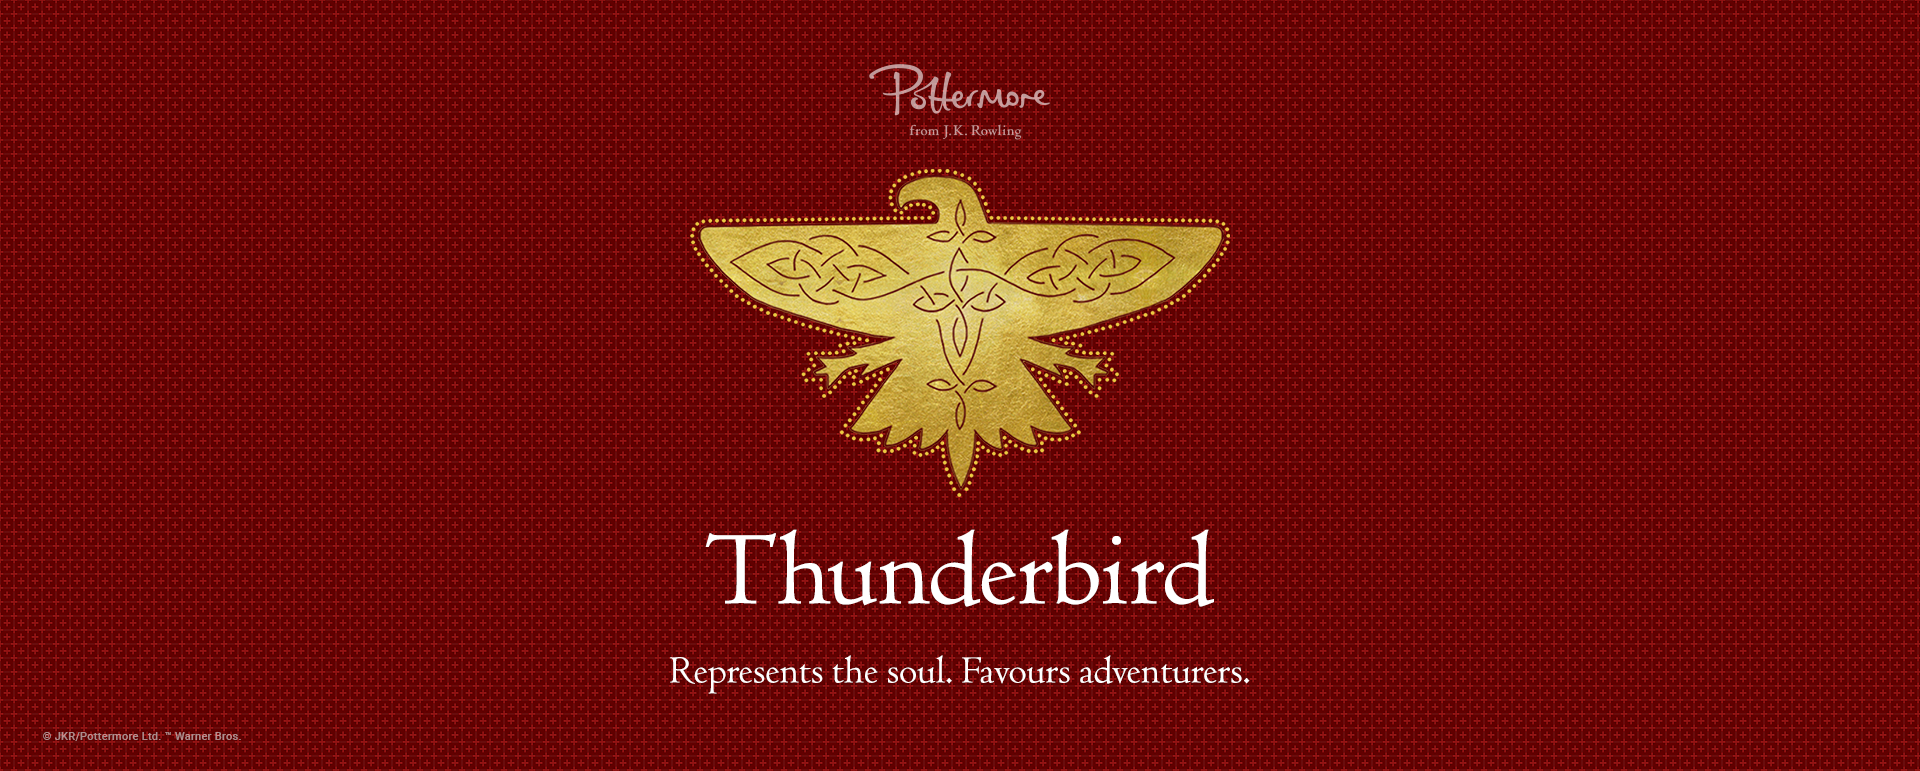 Ilvermorny School of Witchcraft and Wizardry: